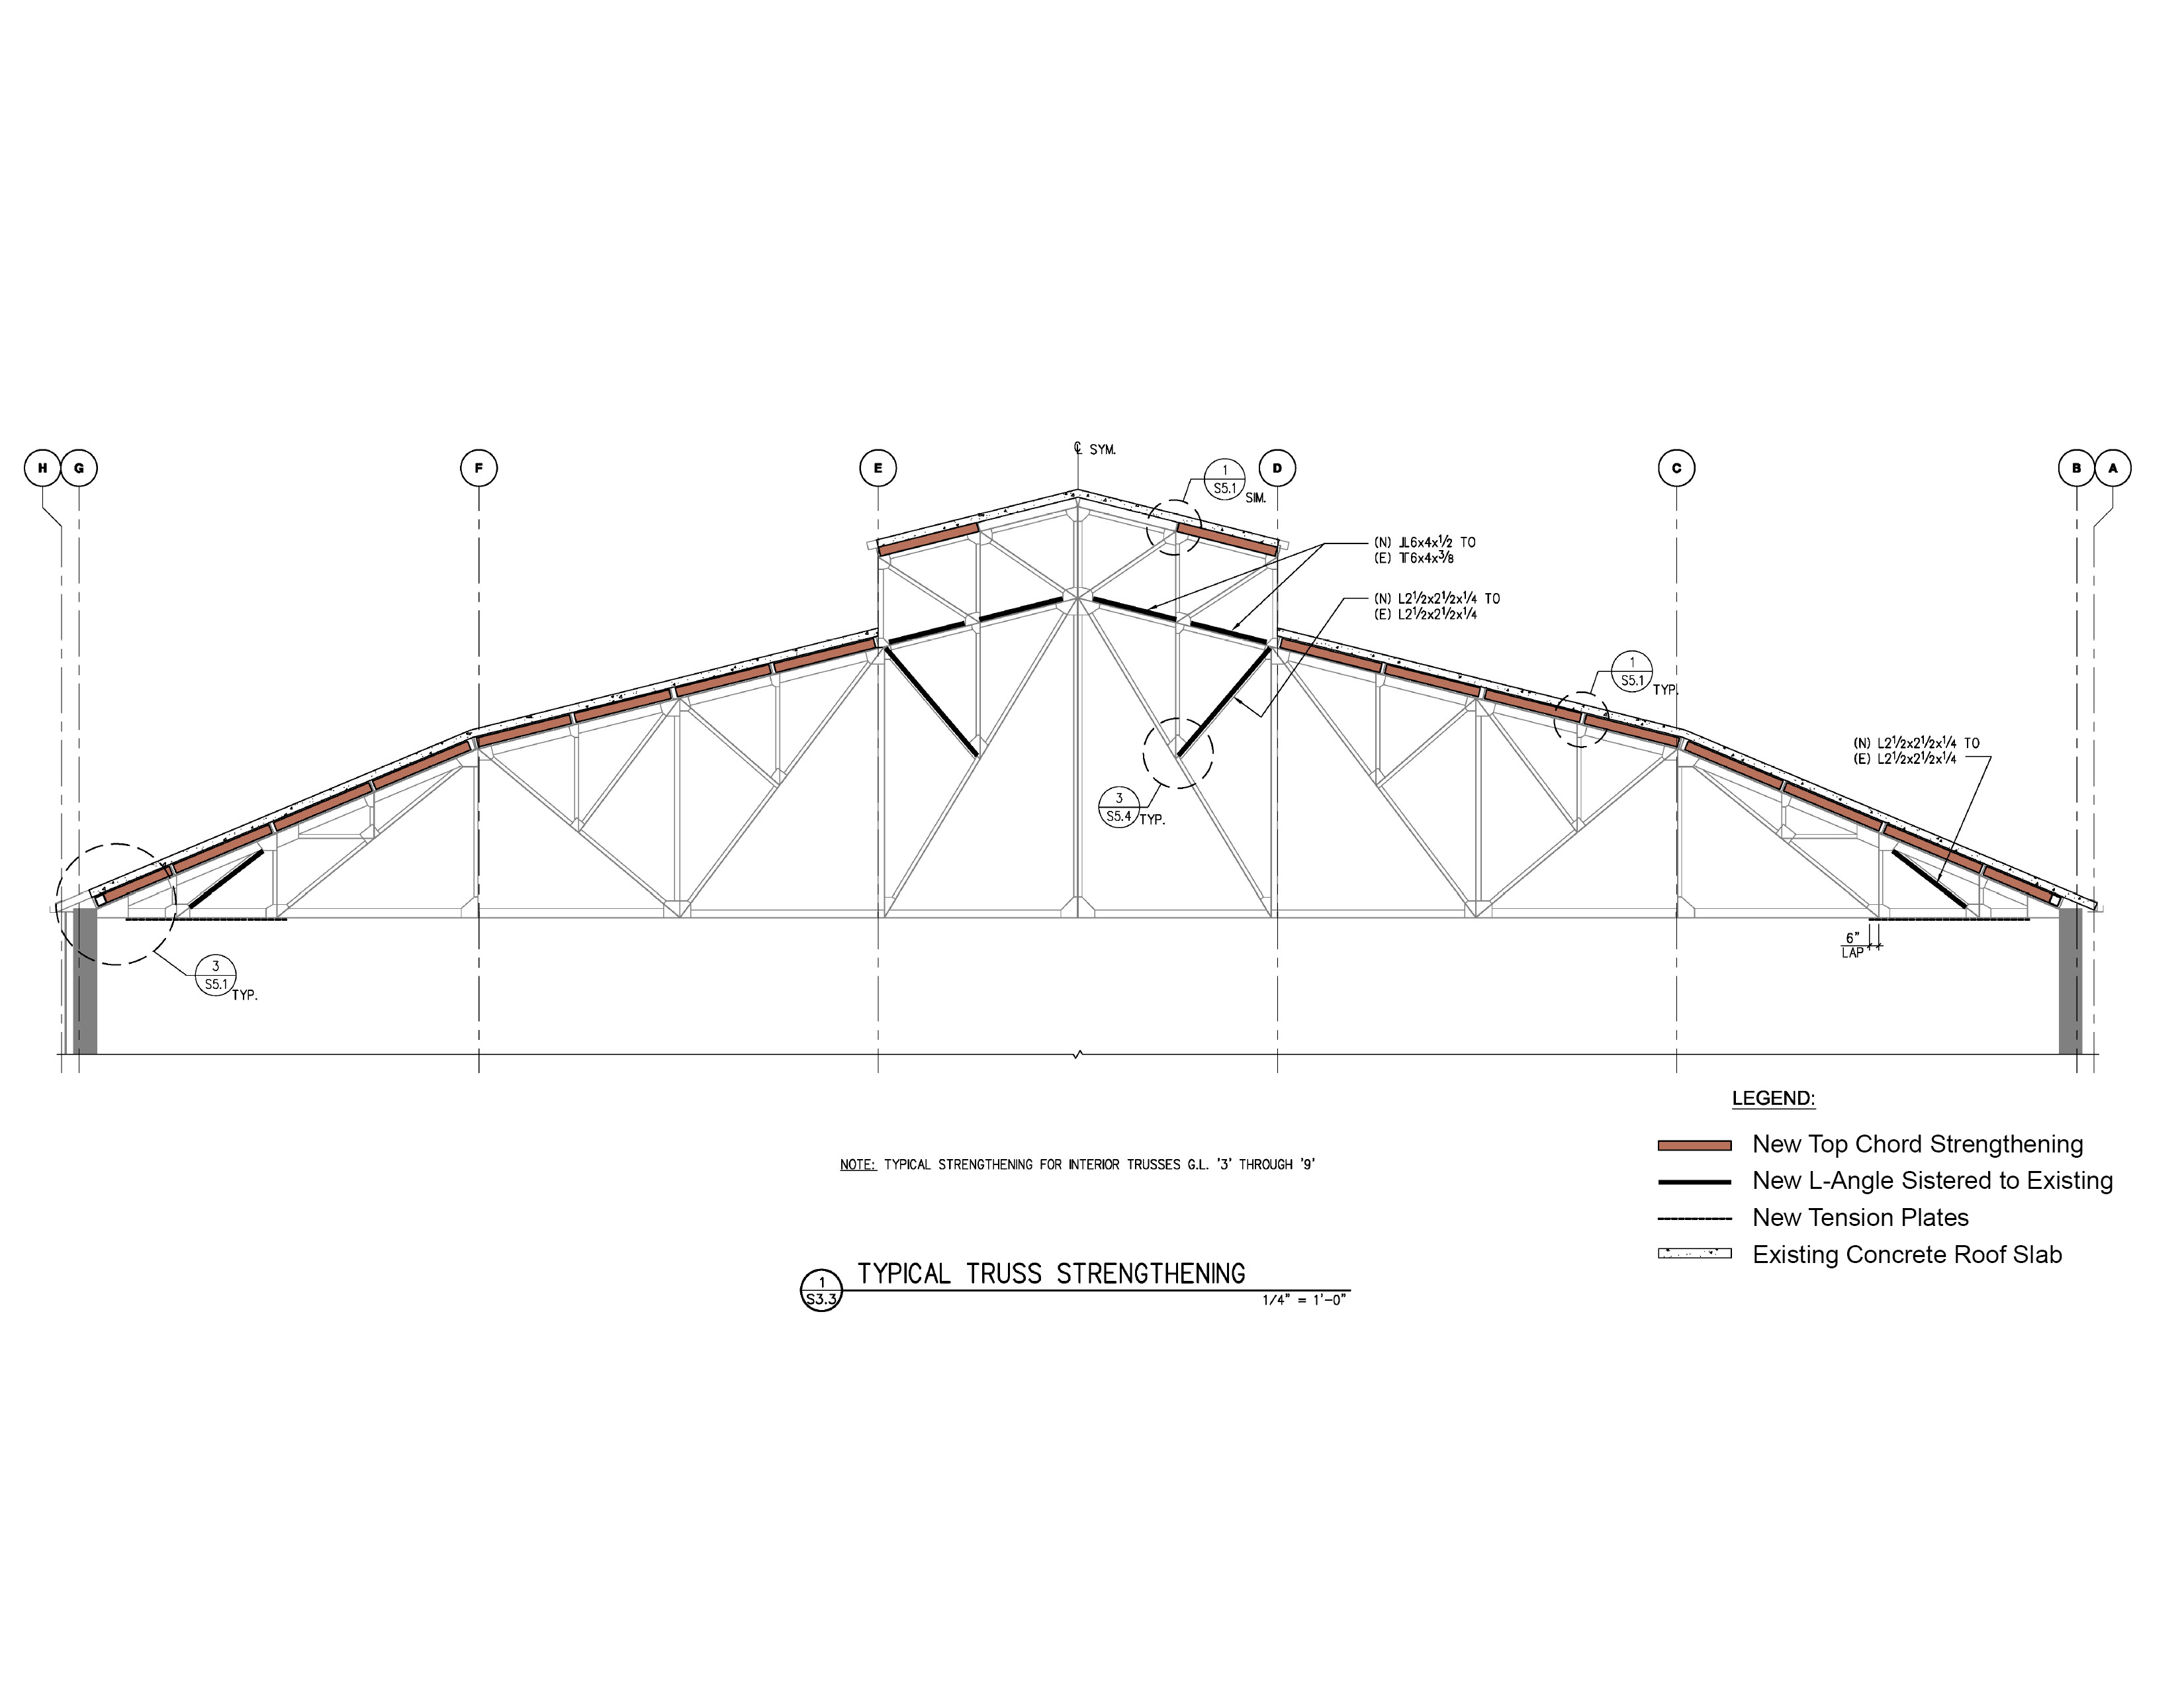 House of Air Structural Plan of Roof Truss Strengthening